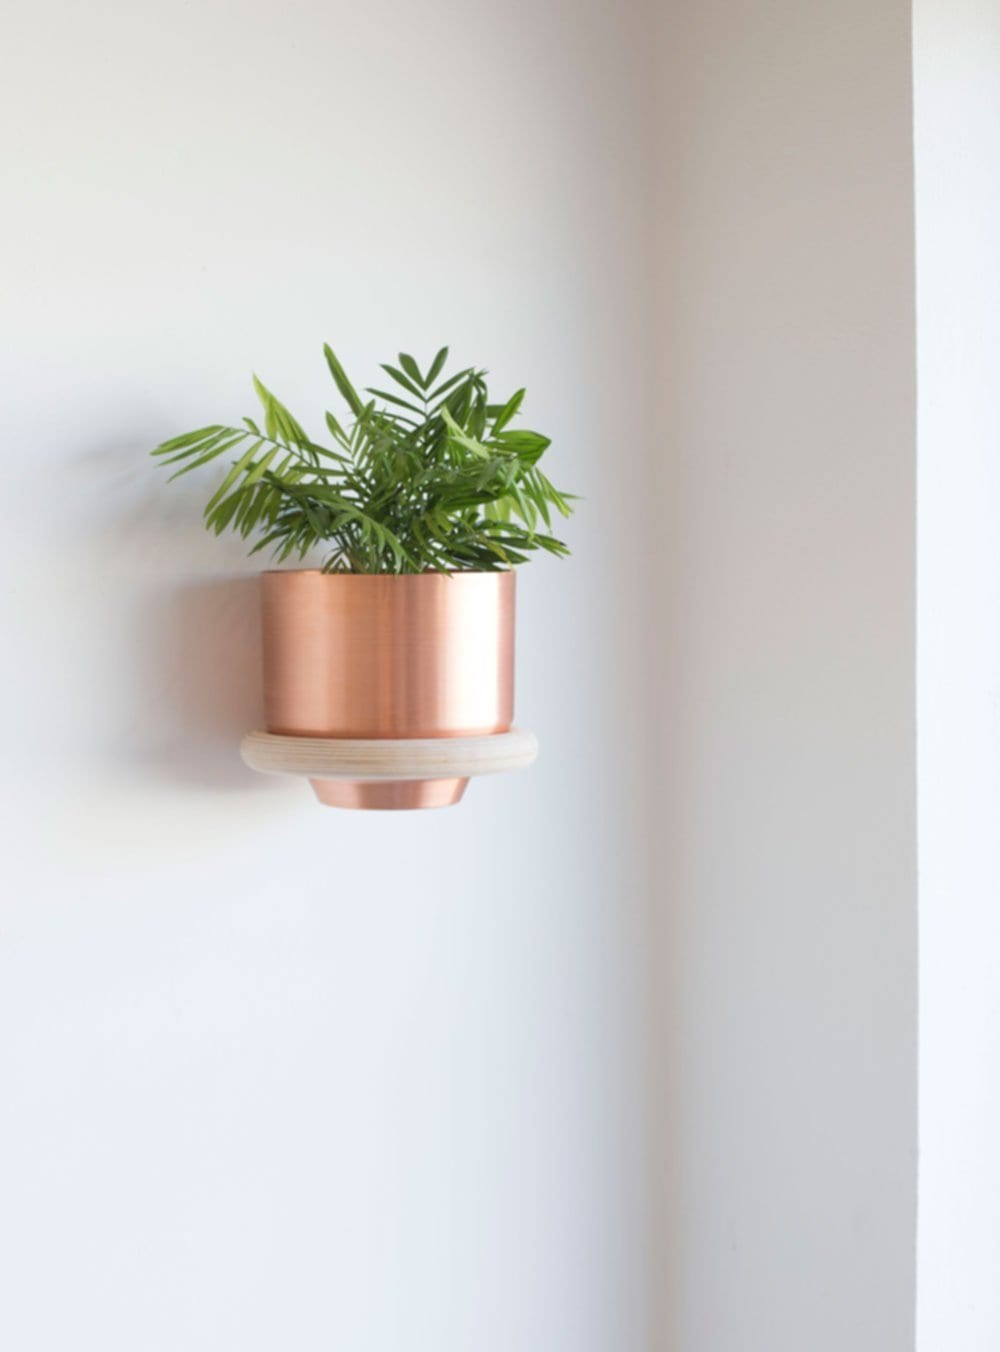 Metallic Planter Yield Design House Sarah Le Donne Blog Perfect Wall Mounted Pot Rack